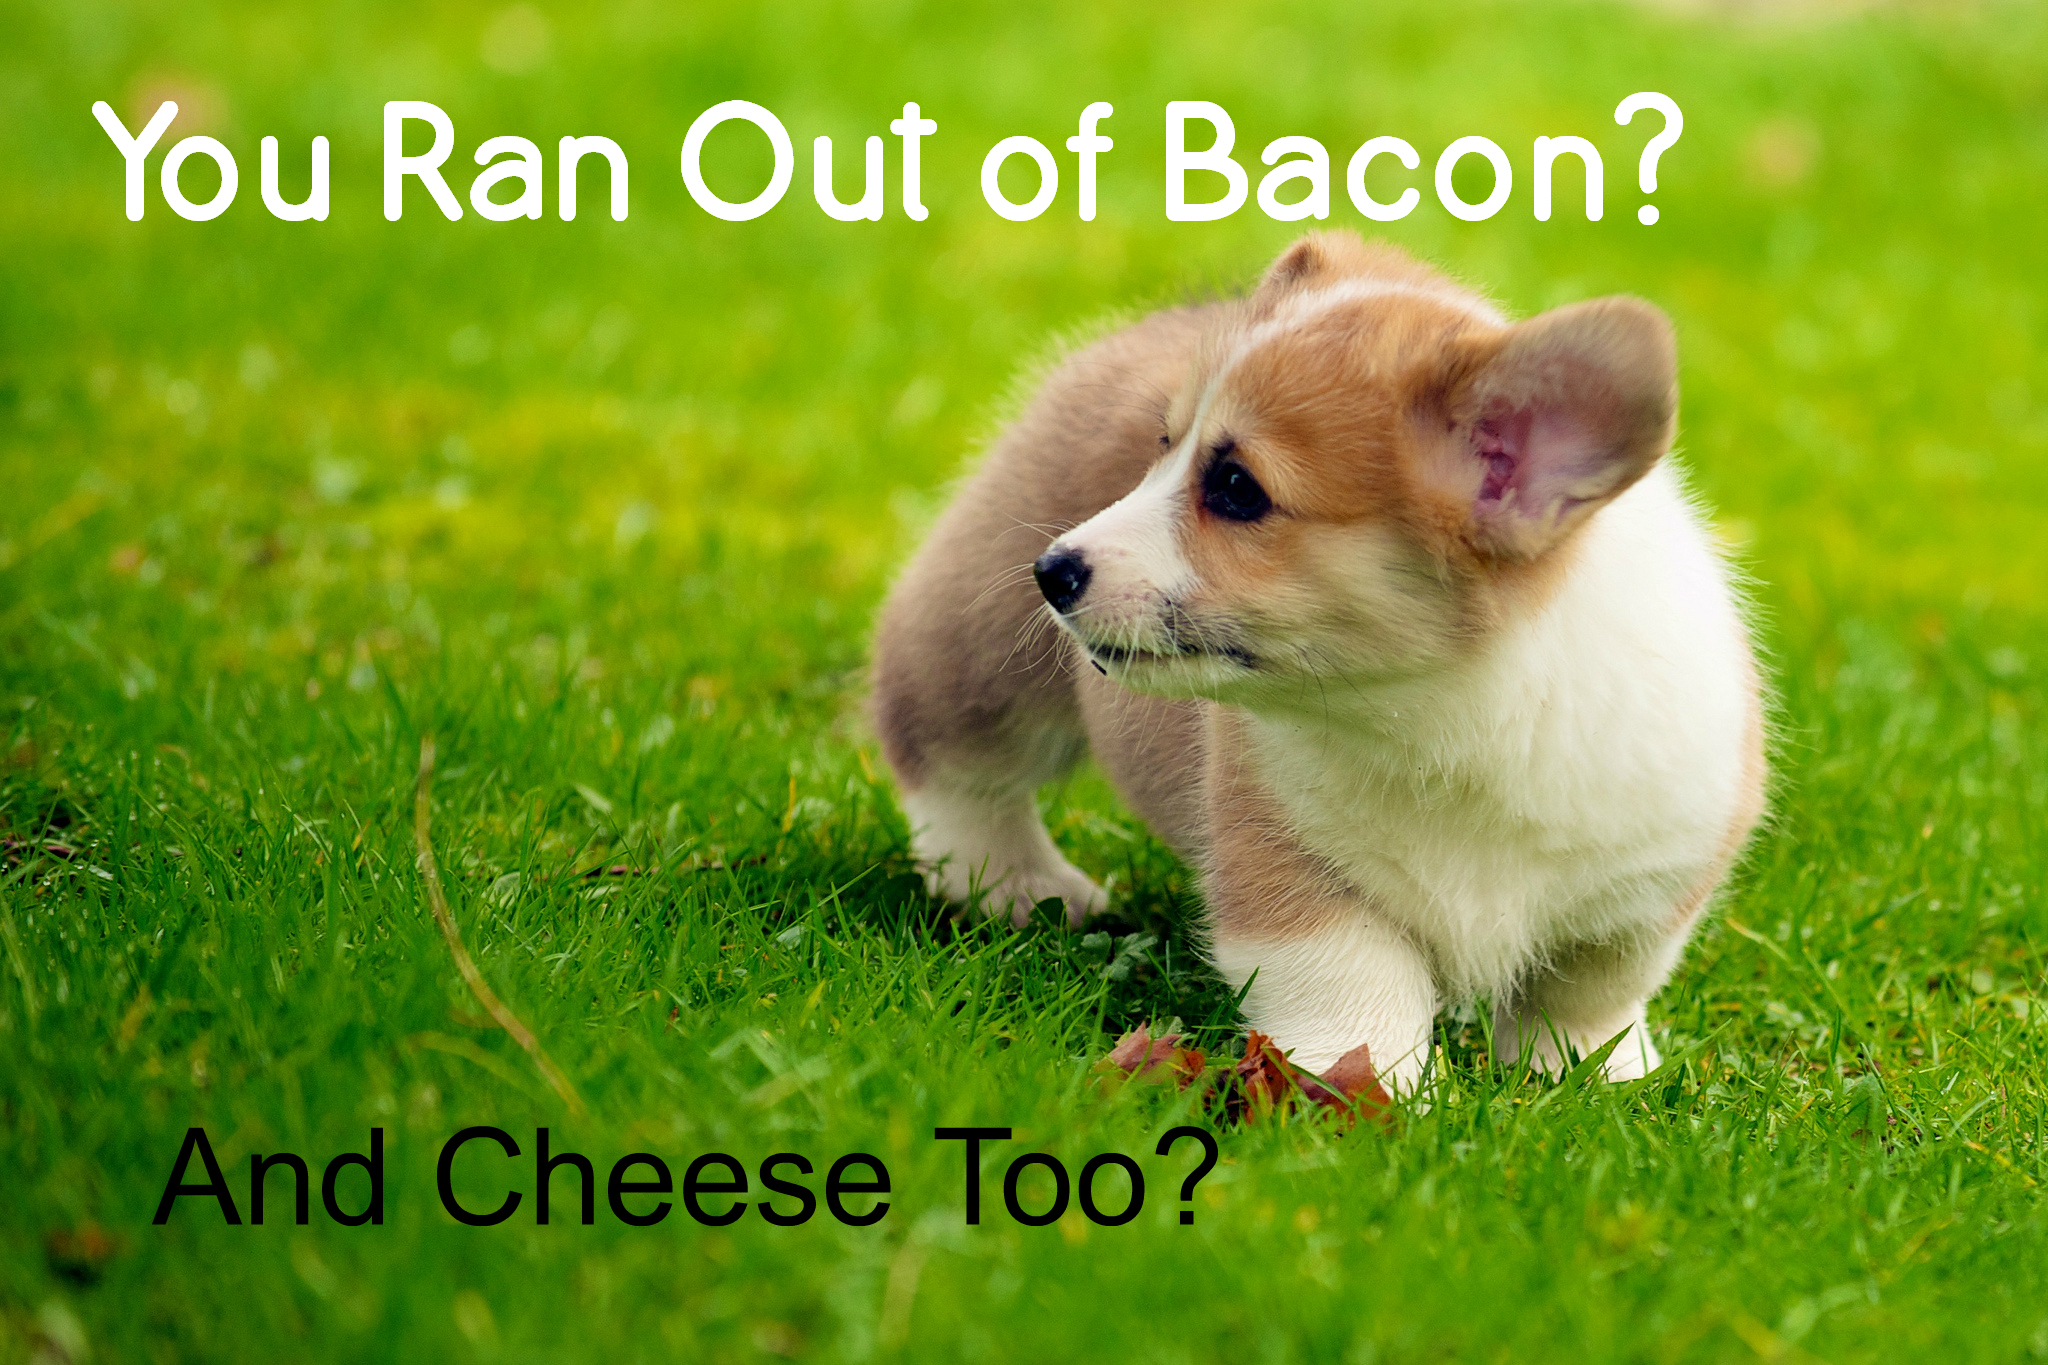 Corgi Puppy Meme Out of Bacon